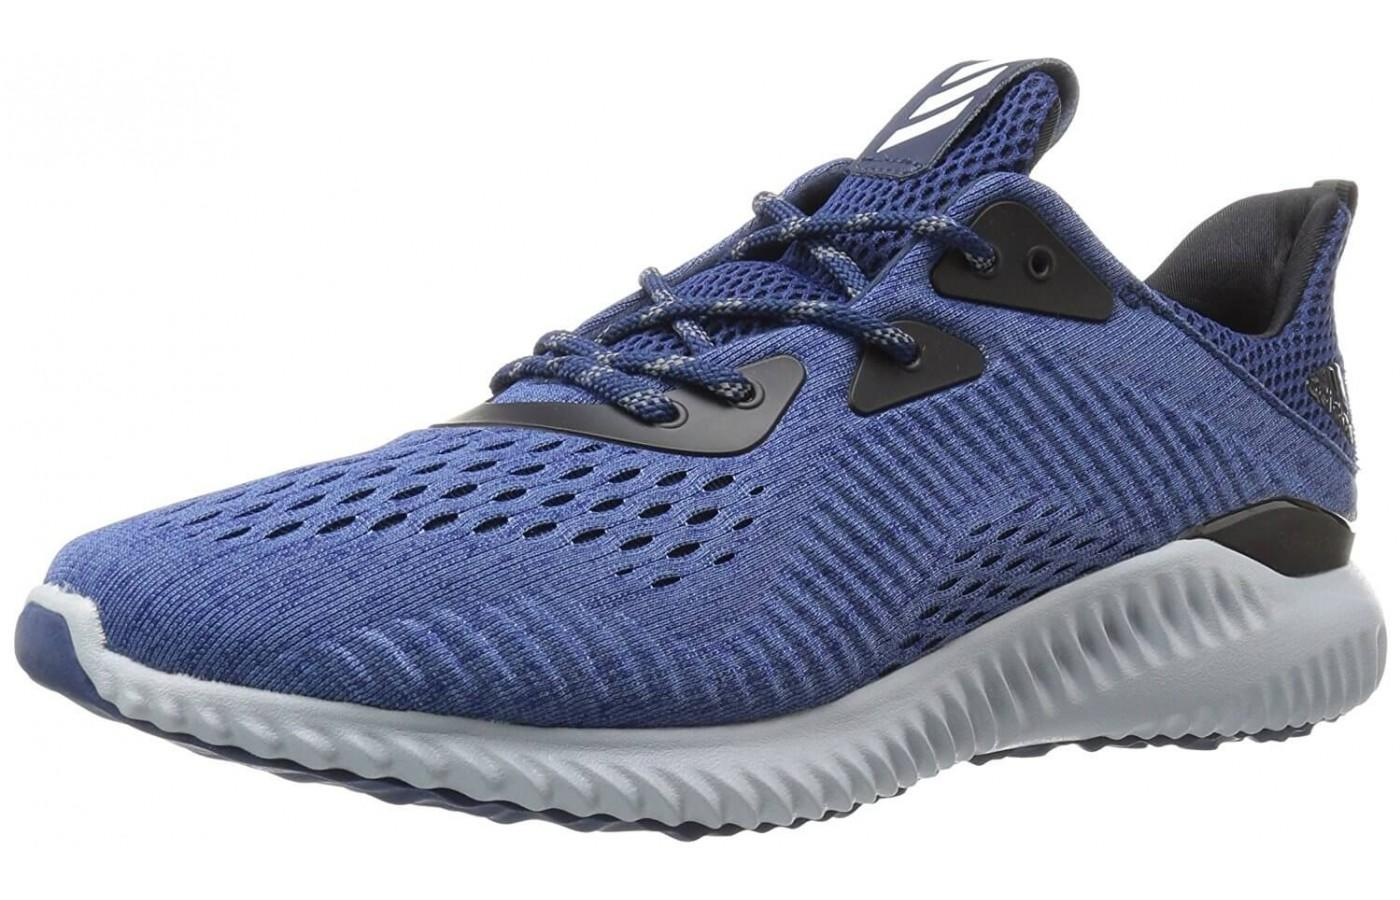 0874e6dc4cd37 The Adidas Alphabounce EM features Bounce cushioning ...